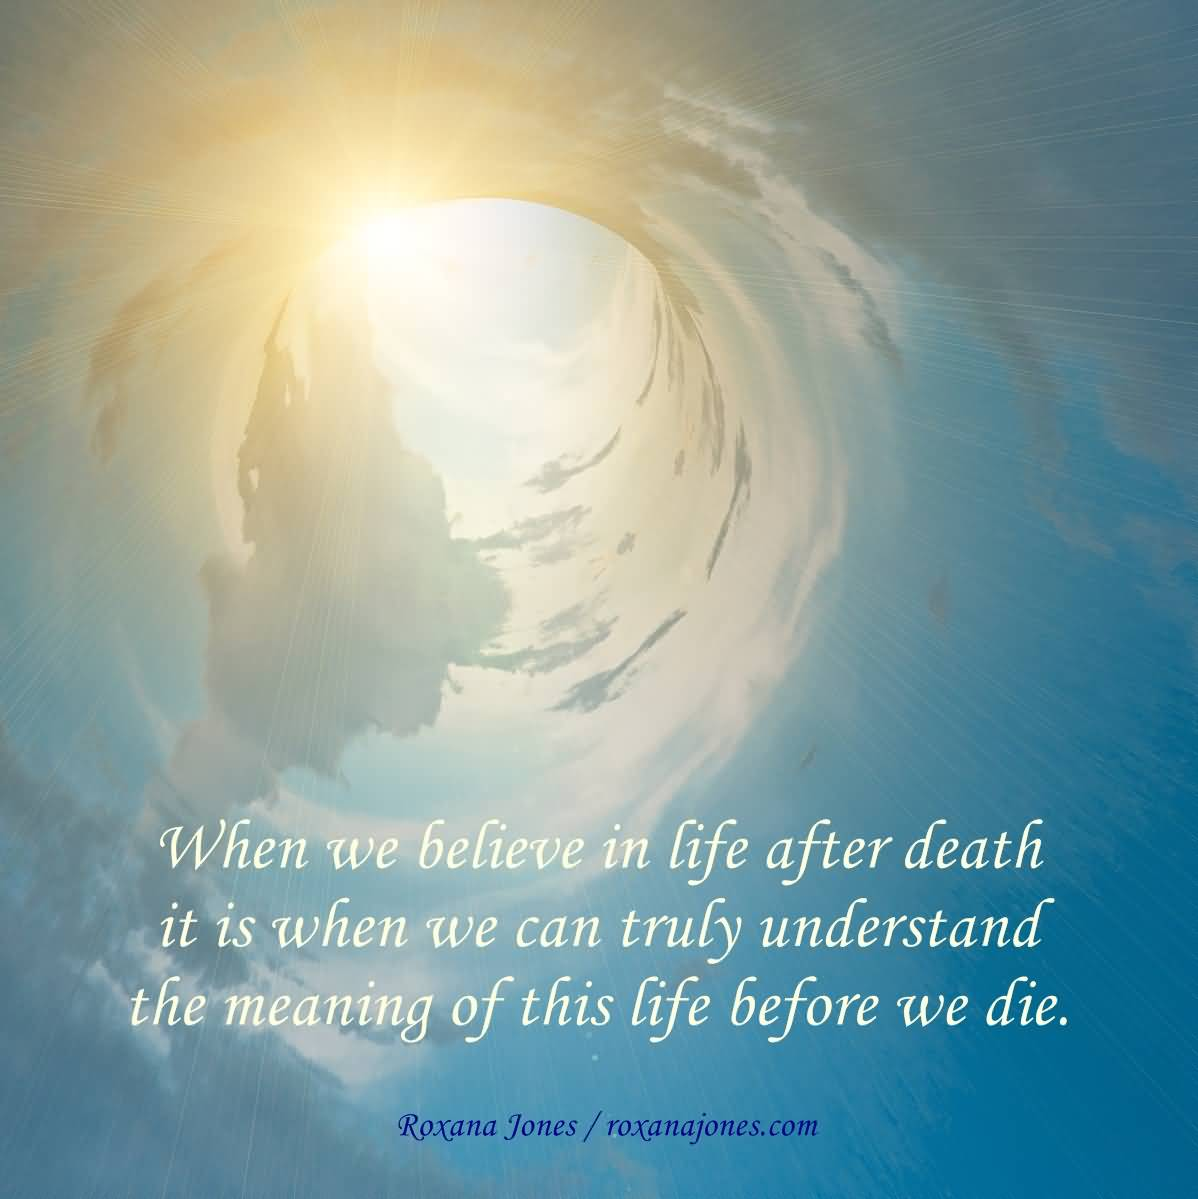 Inspirational Quote About Life Inspirational Quotes Life After Death 11  Quotesbae